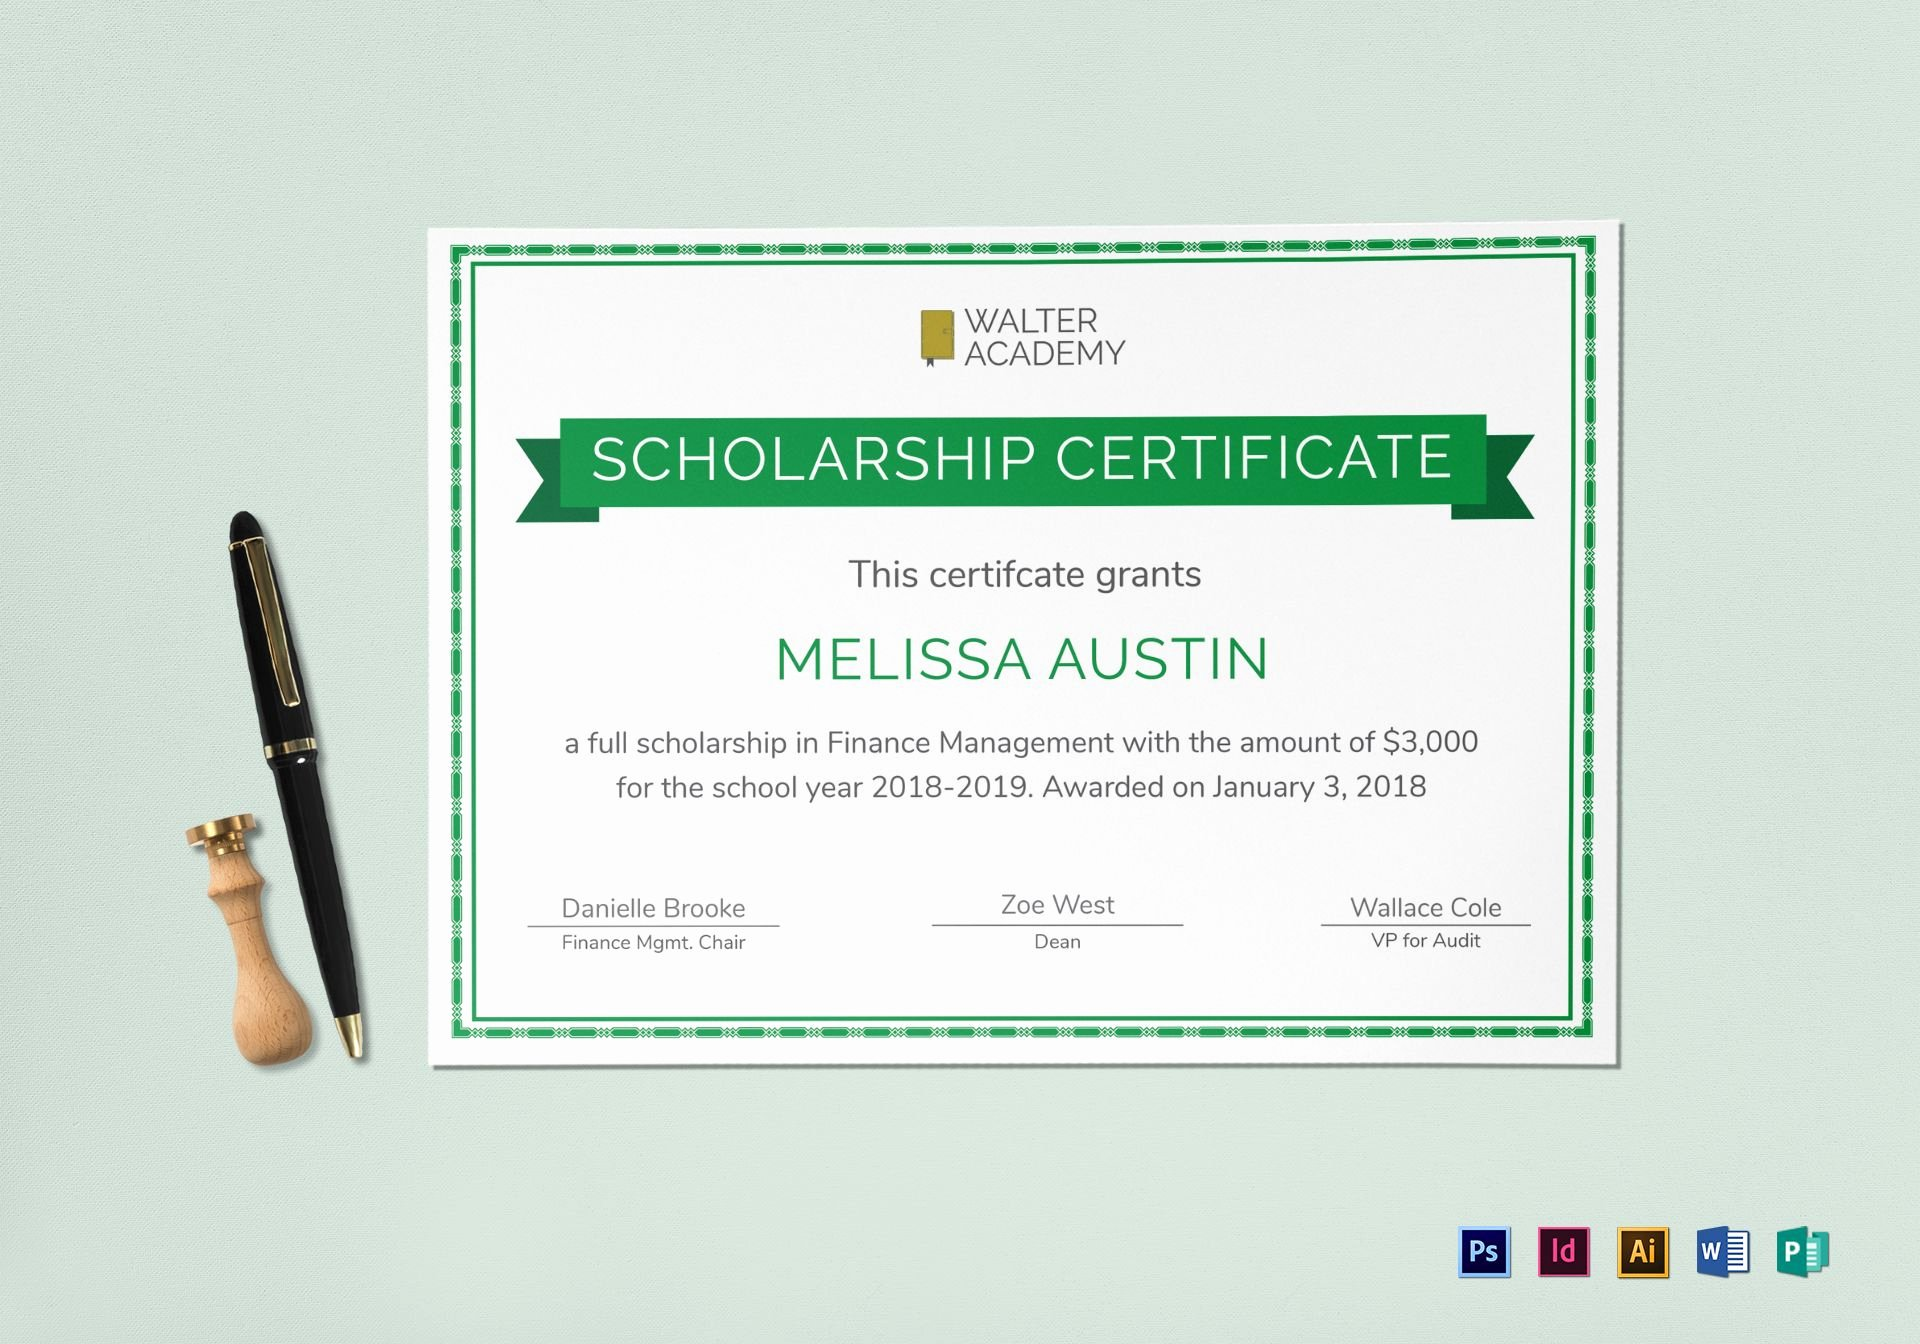 Scholarship Certificate Template Free Luxury Scholarship Certificate Design Template In Psd Word